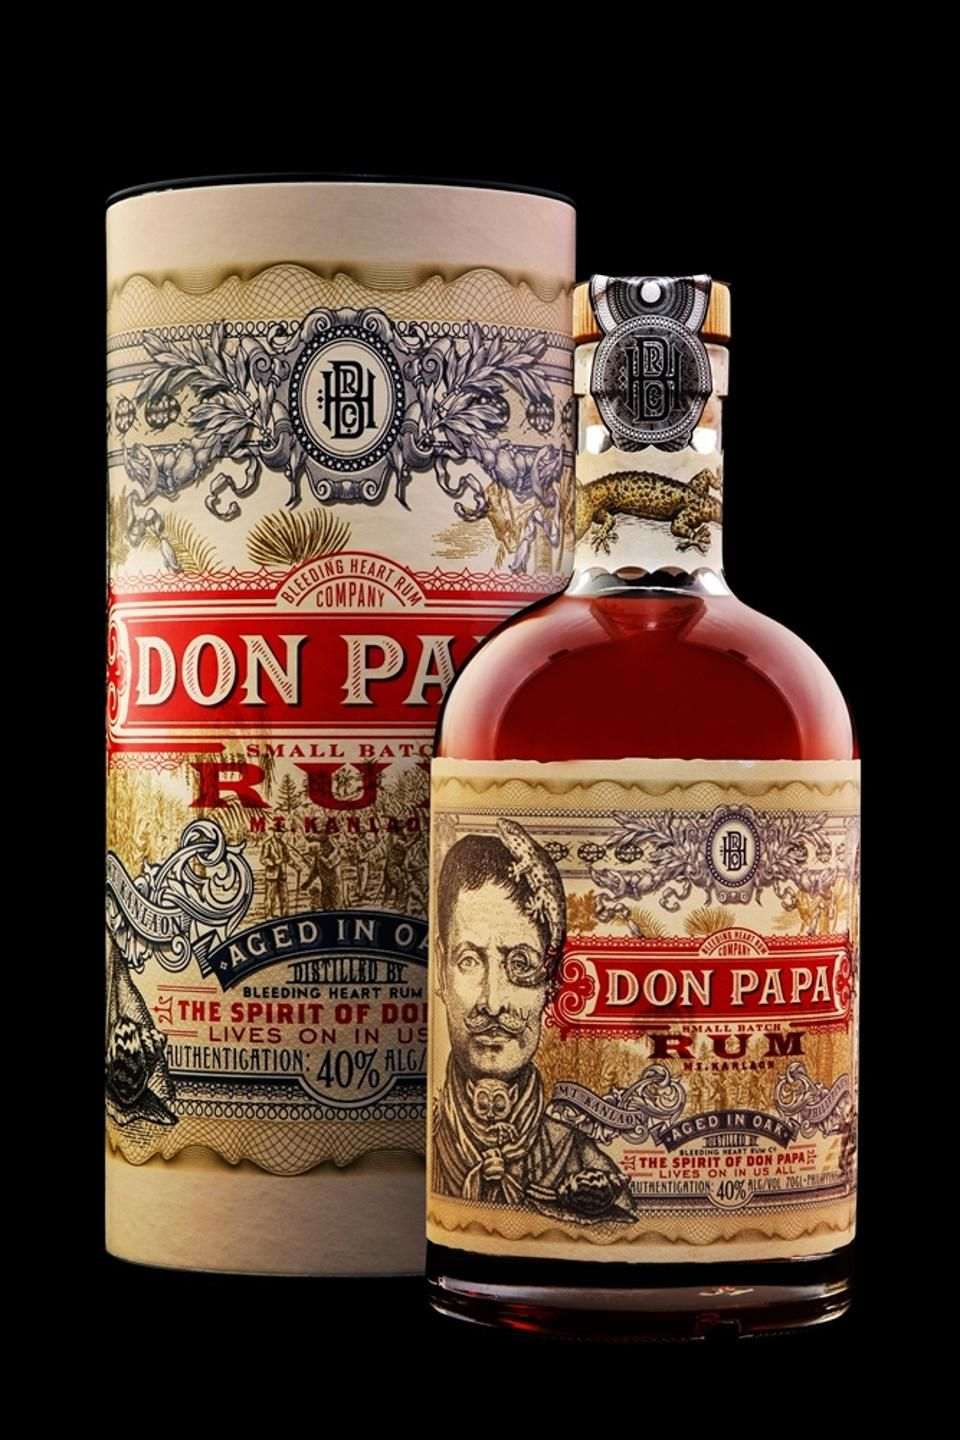 Don Papa Is A Small Batch Rum From The Philippines Sugar Capital Of Negros Distributed By Bleeding Heart Rum Company Intended To Be T Rum Bottle Rum Alcohol